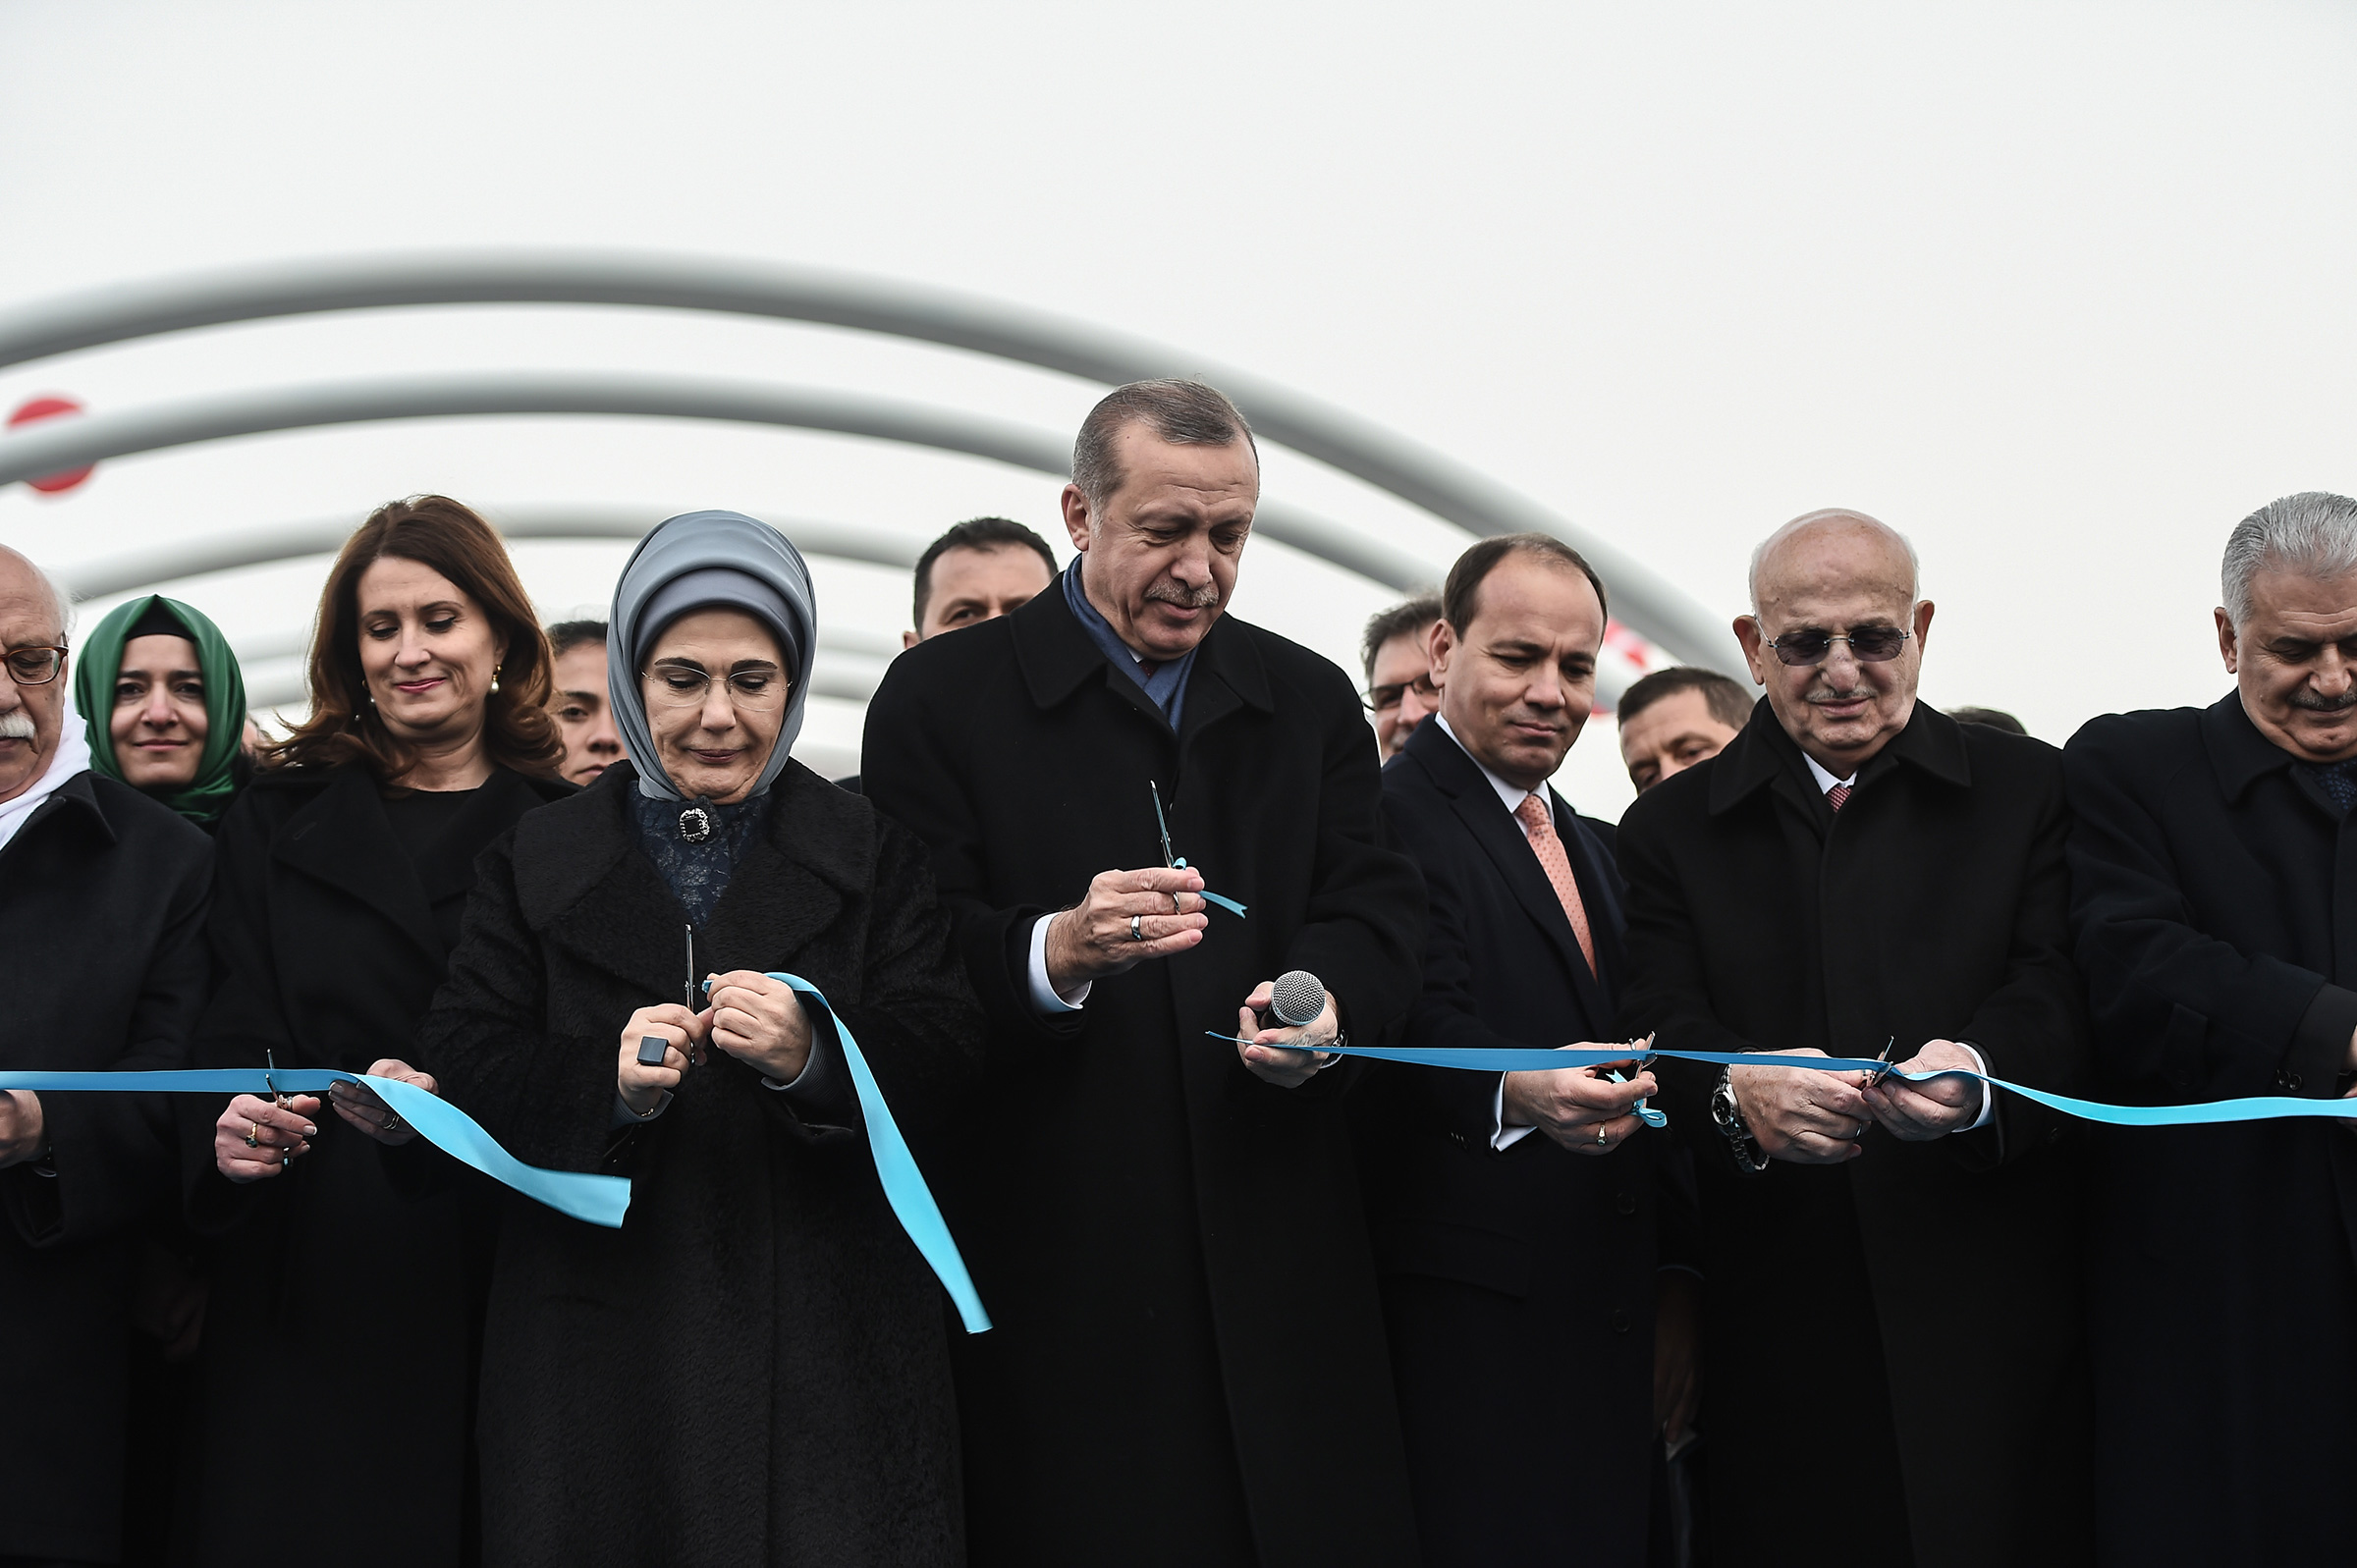 Turkish President Recep Tayyip Erdogan, center, with his wife Emine Erdogan by his side and Prime Minister Binali Yildirim, right, during the opening ceremony of a road tunnel underneath the Bosporus Strait in Istanbul in December 2016.